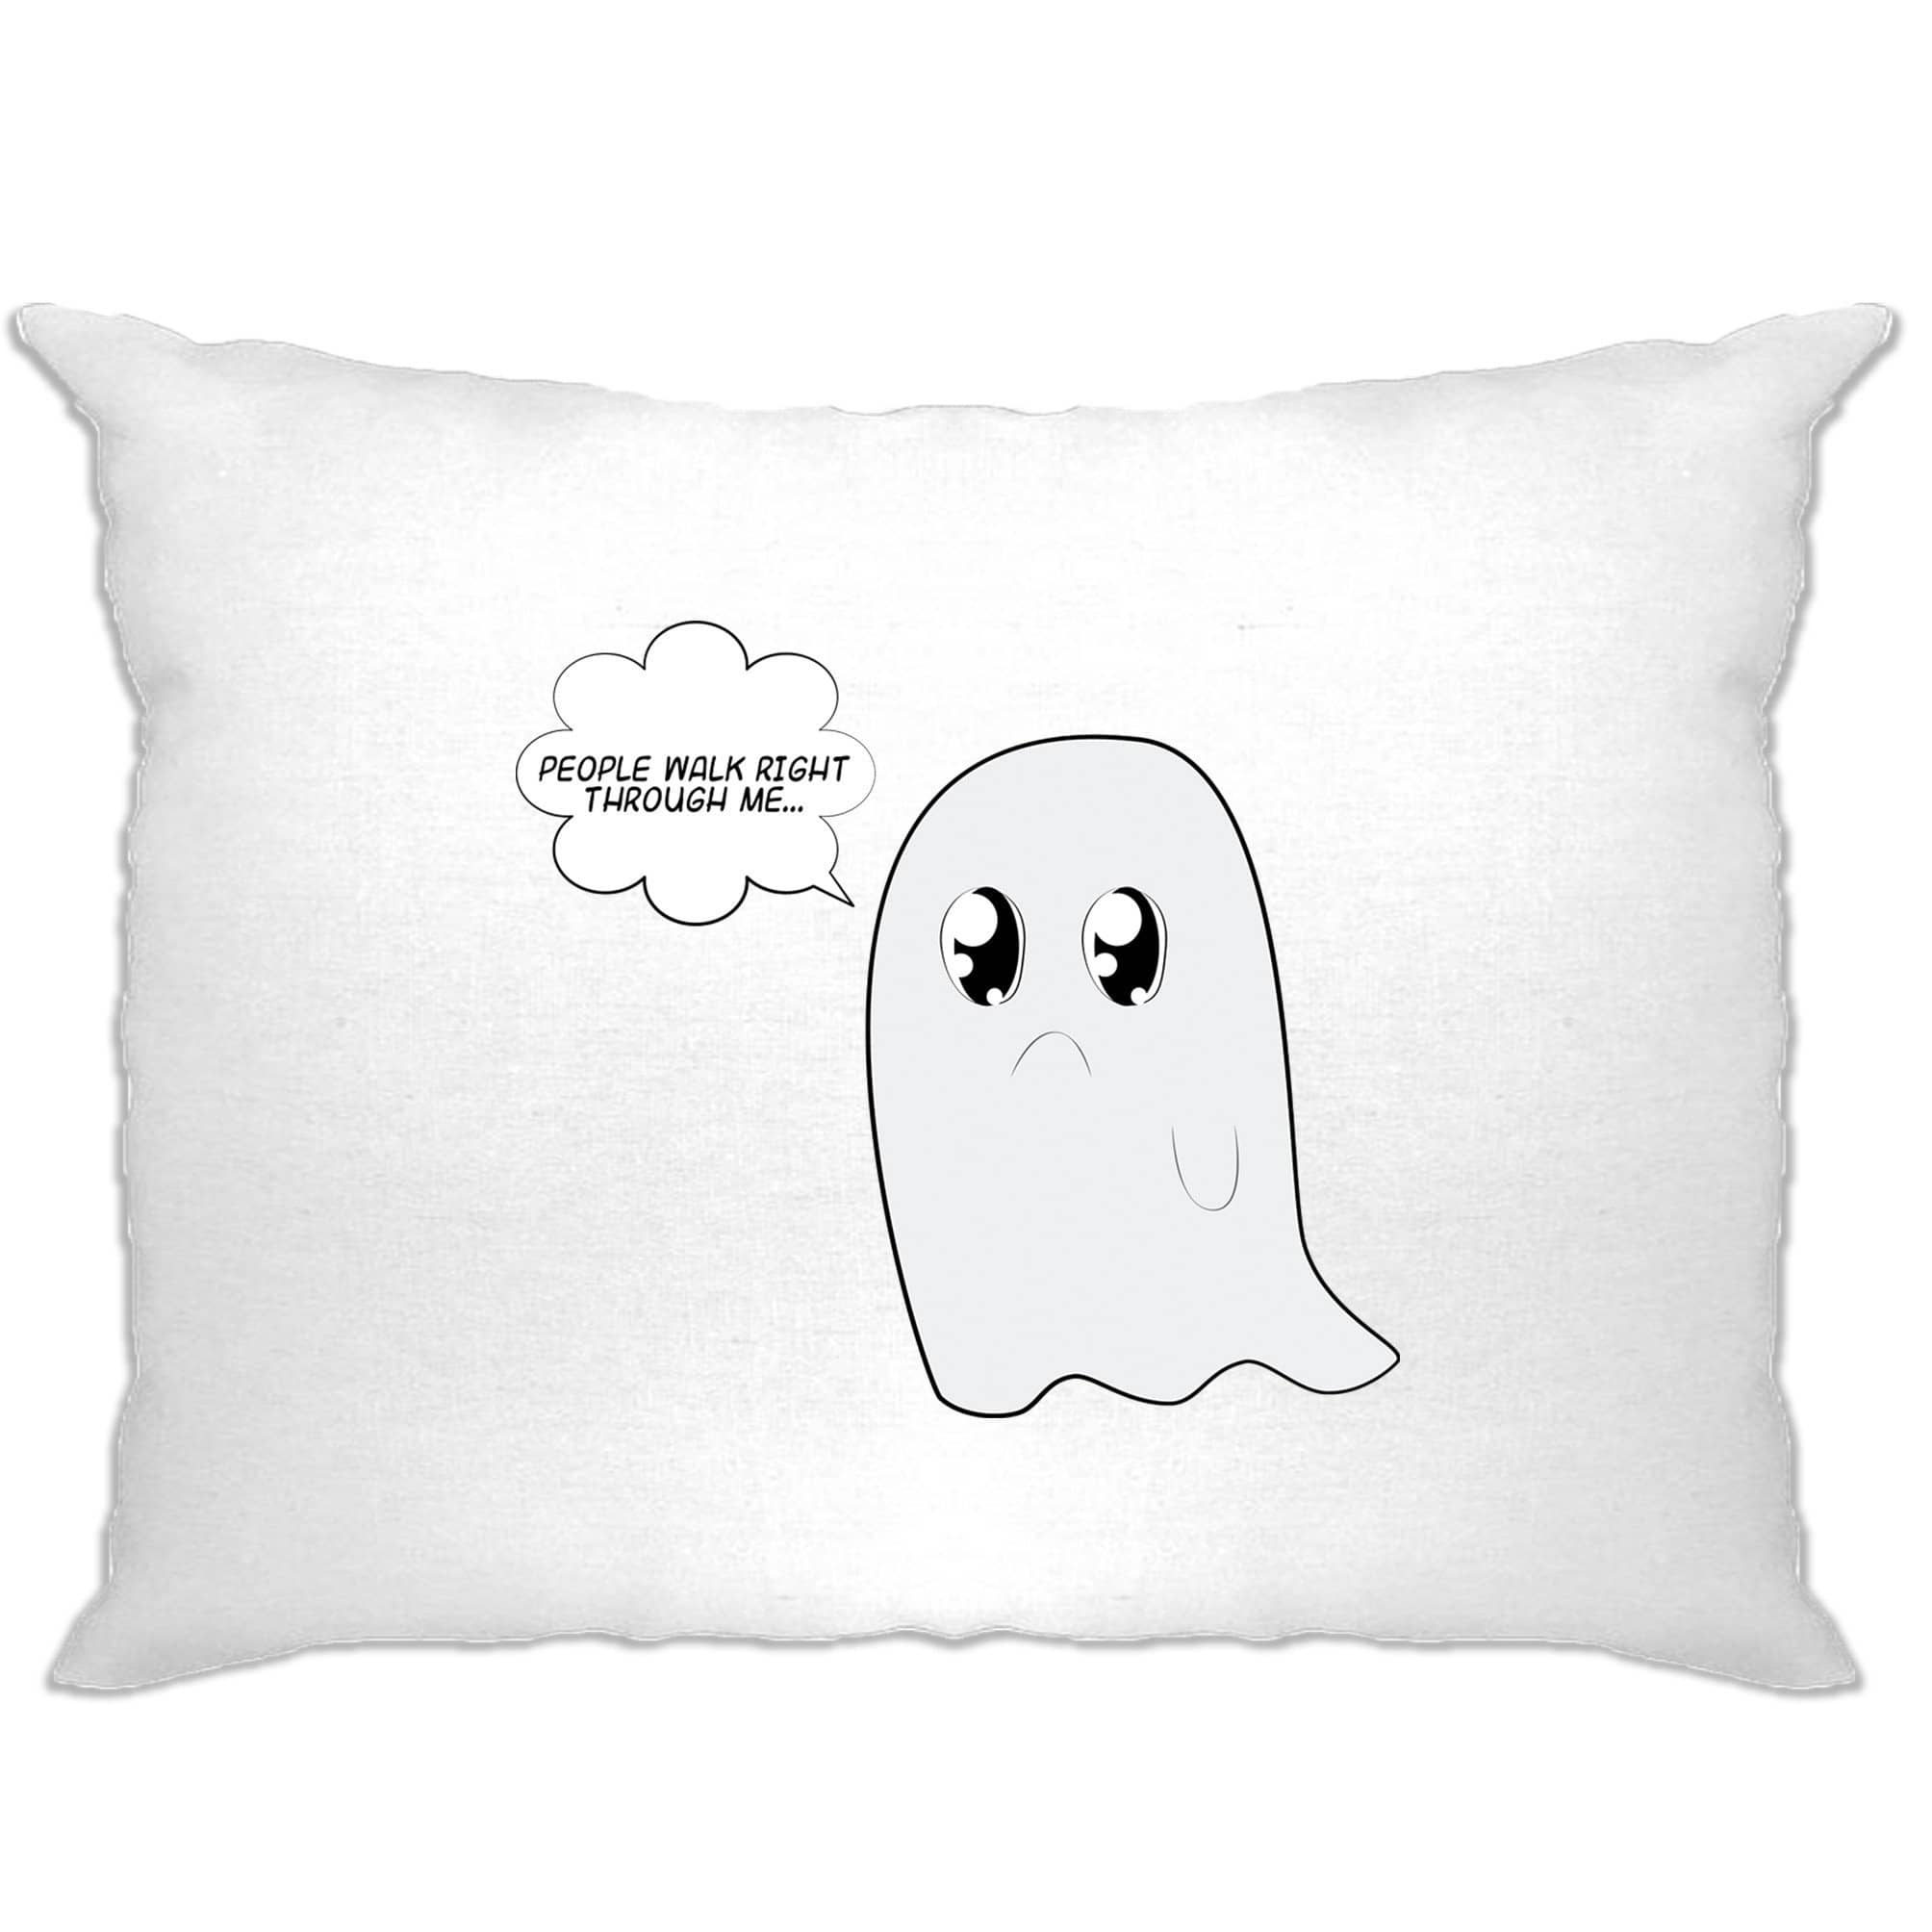 Cute Ghost Pillow Case People Walk Right Through Me Joke